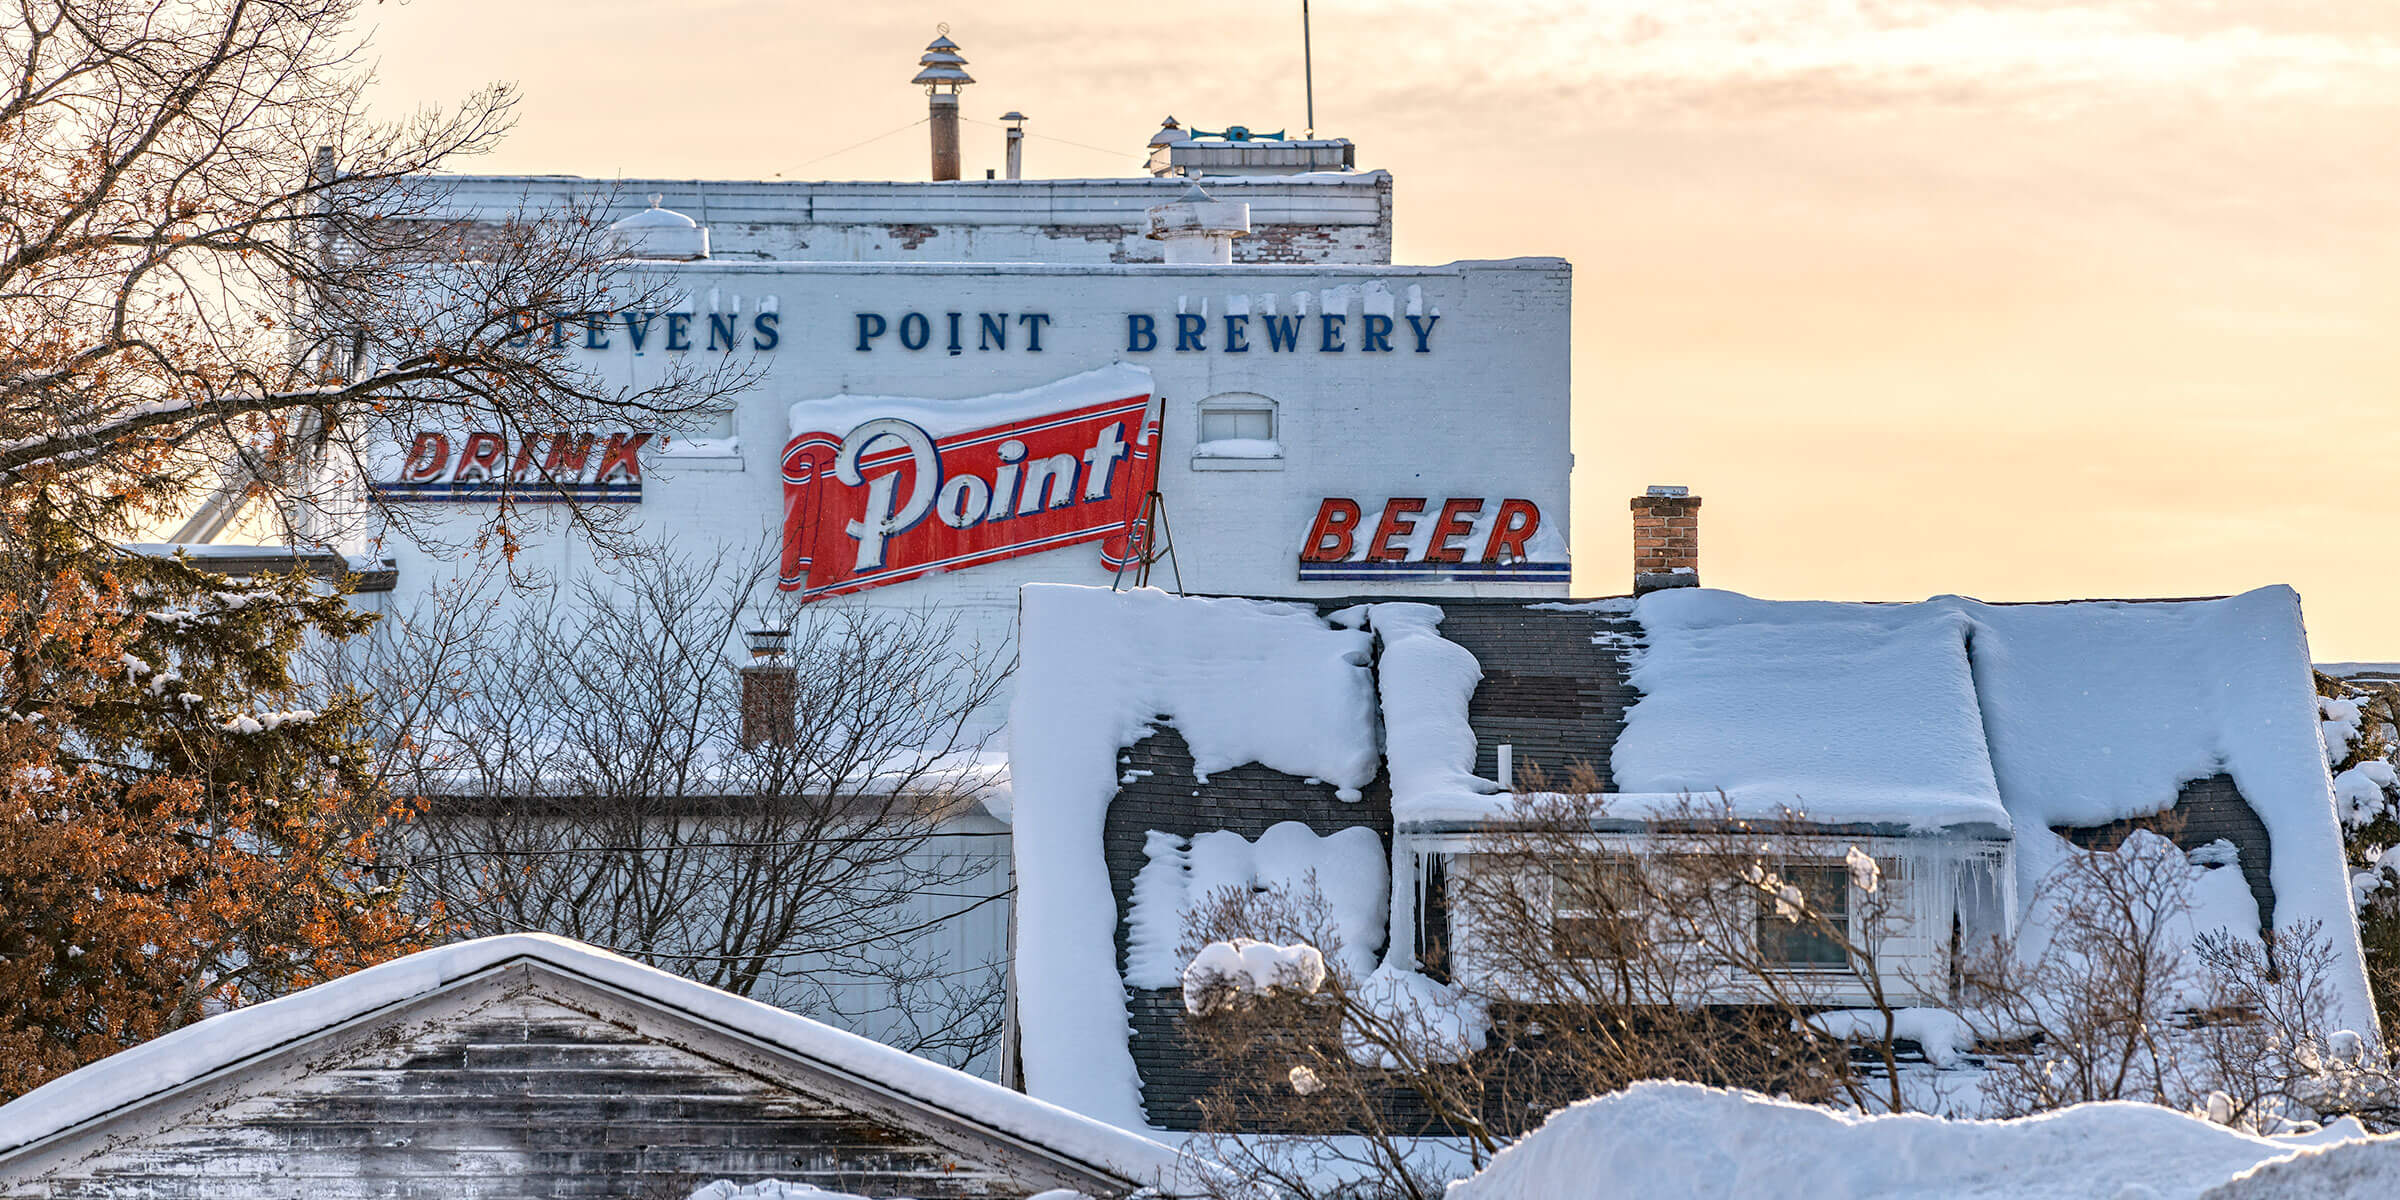 Outside the Stevens Point Brewery in Stevens Point, Wisconsin